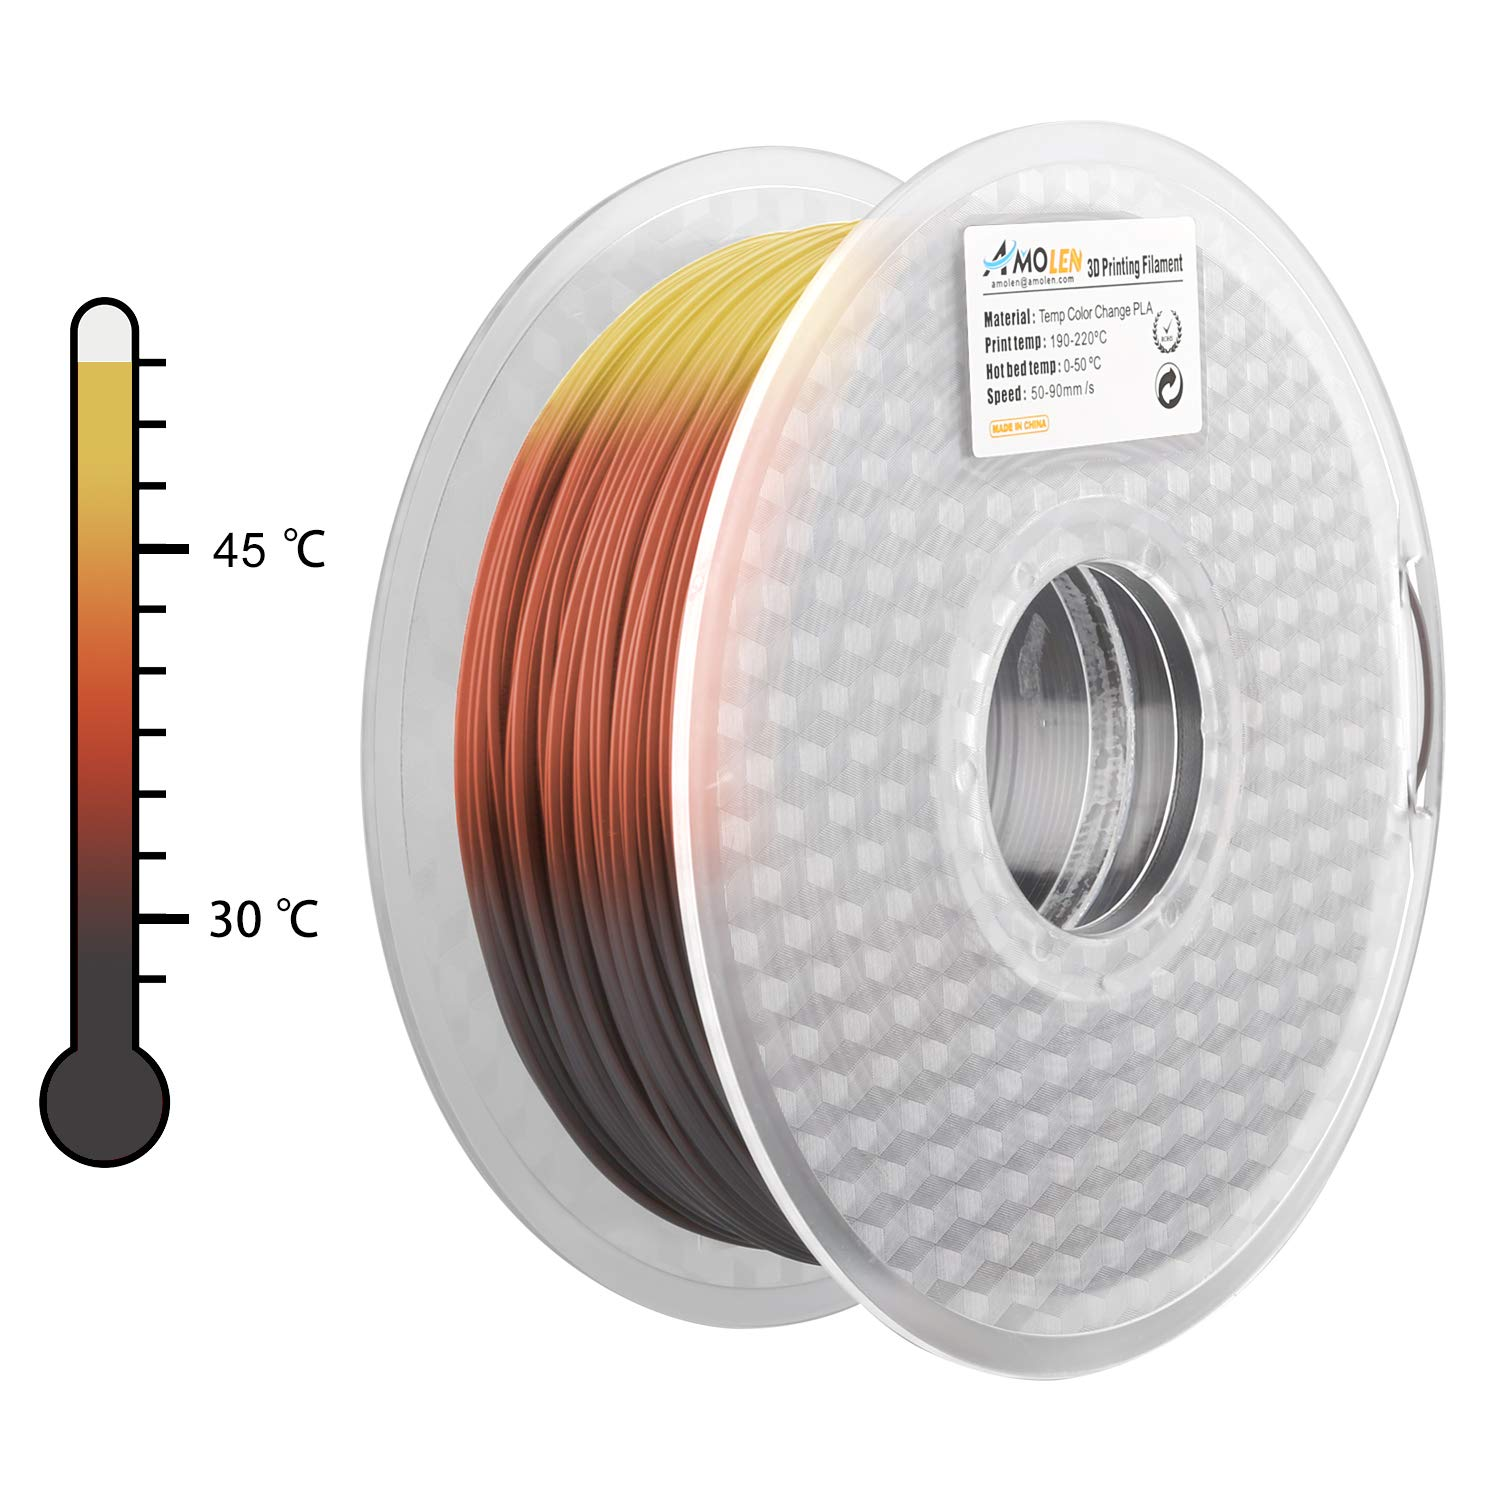 AMOLEN 3D Printer Filament, Color Changing with Temperature, Blue to White PLA Filament 1.75mm +/- 0.03 mm, 2.2 LBS(1KG), includes Sample Temp Color Change Pink to White Filament.